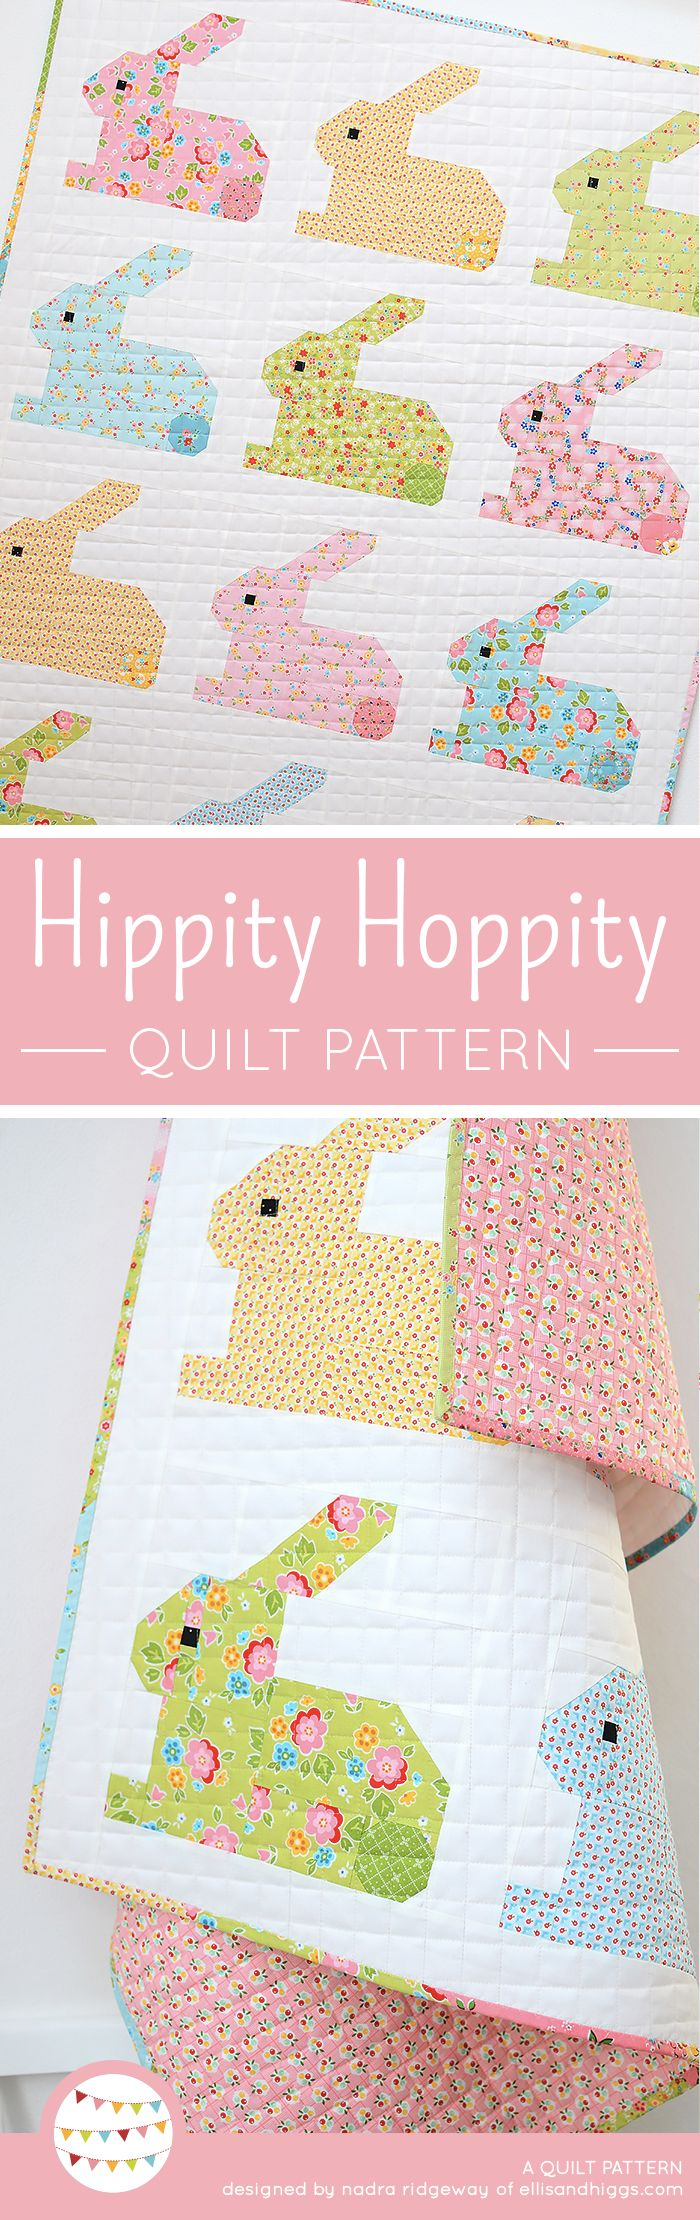 25 best Quilts - Easter images on Pinterest | Easter, Baby quilts ...